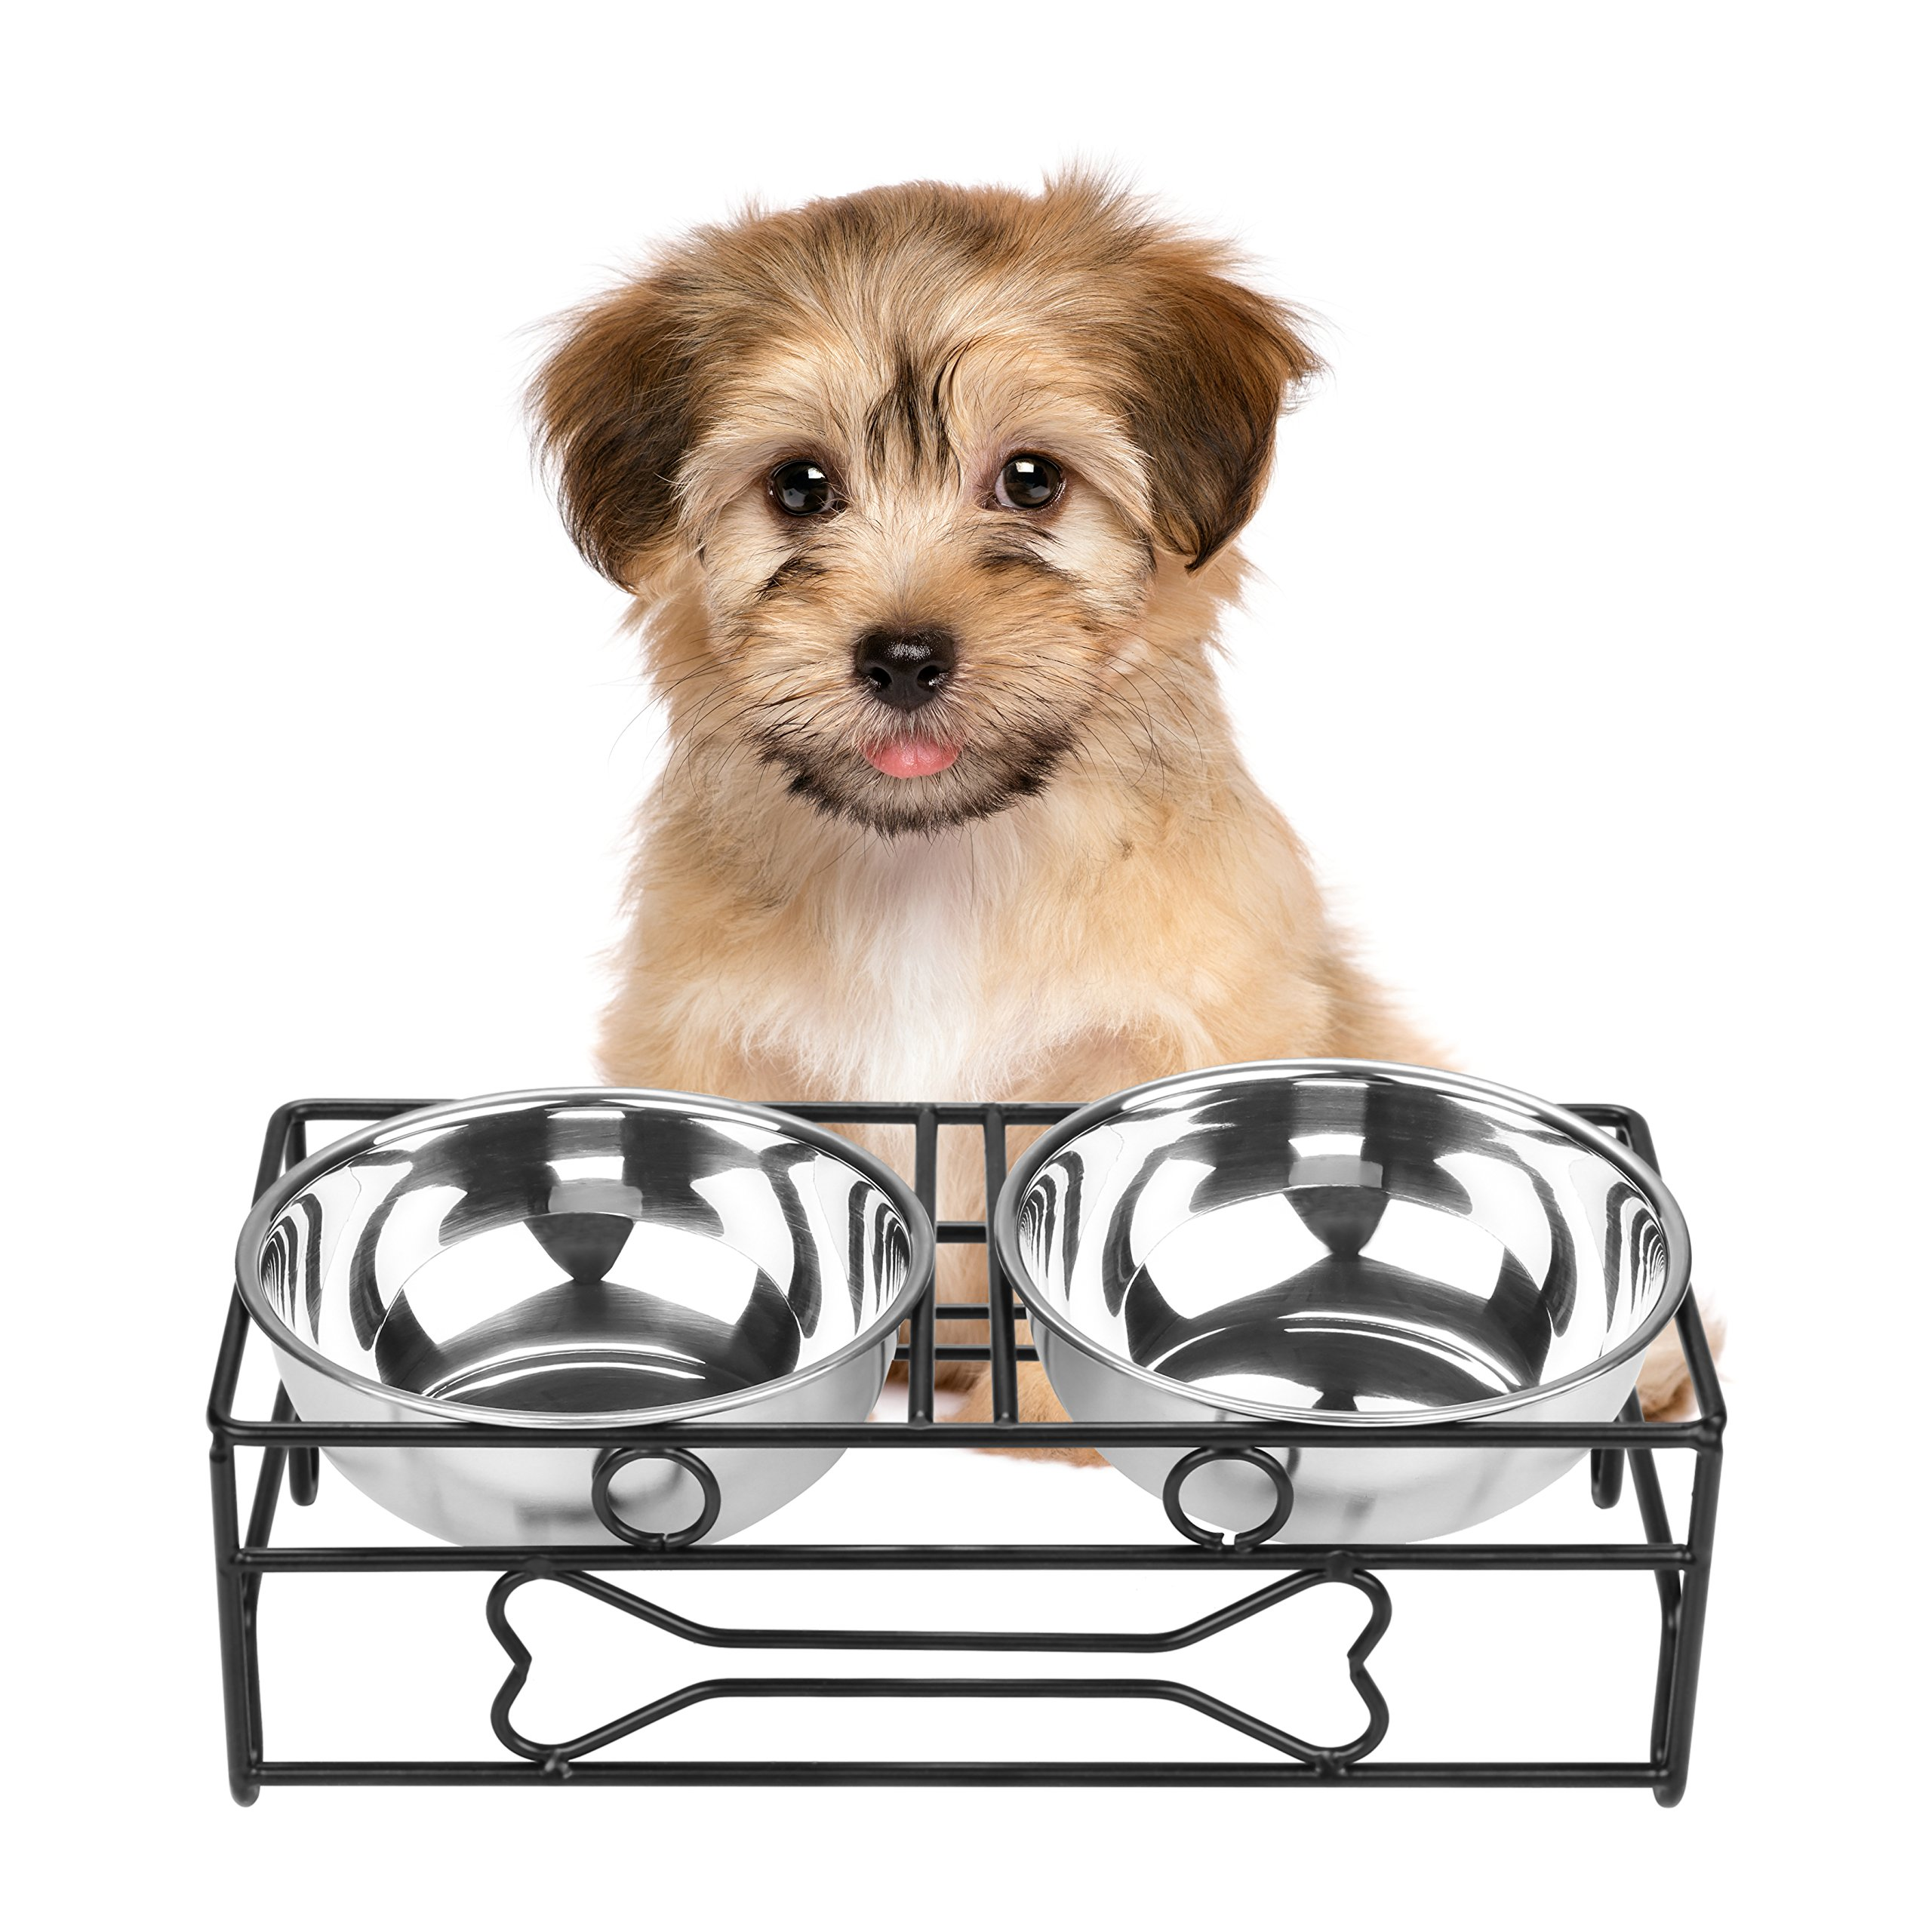 VIVIKO Bone Style Pet Feeder for Dog Cat, Stainless Steel Food and Water Bowls with Iron Stand (Small)